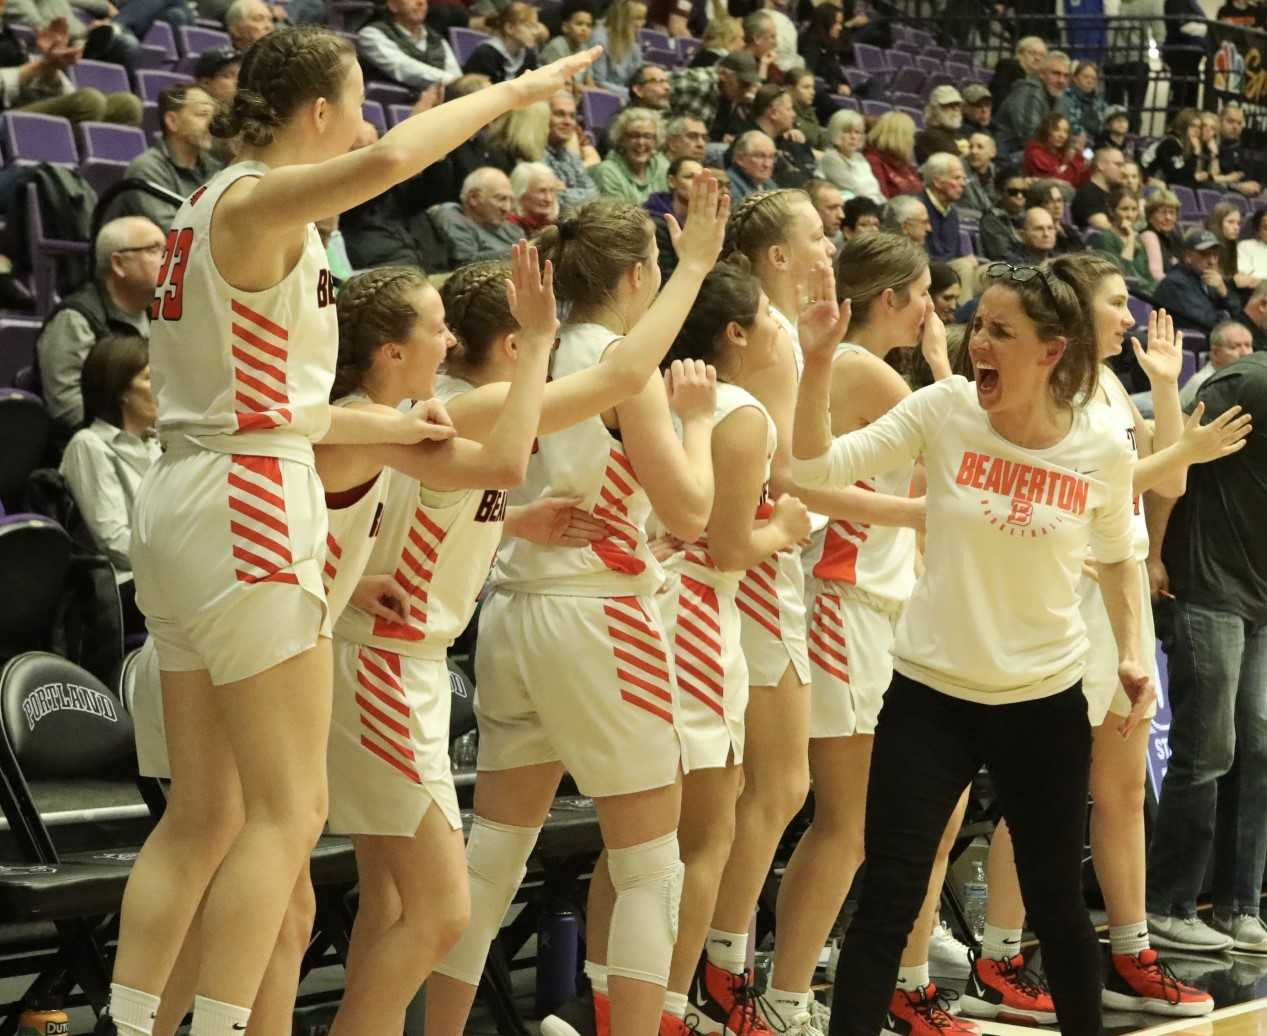 Beaverton coach Kathy Naro celebrates Wednesday's win over Southridge with her players. (Photo by Norm Maves Jr.)